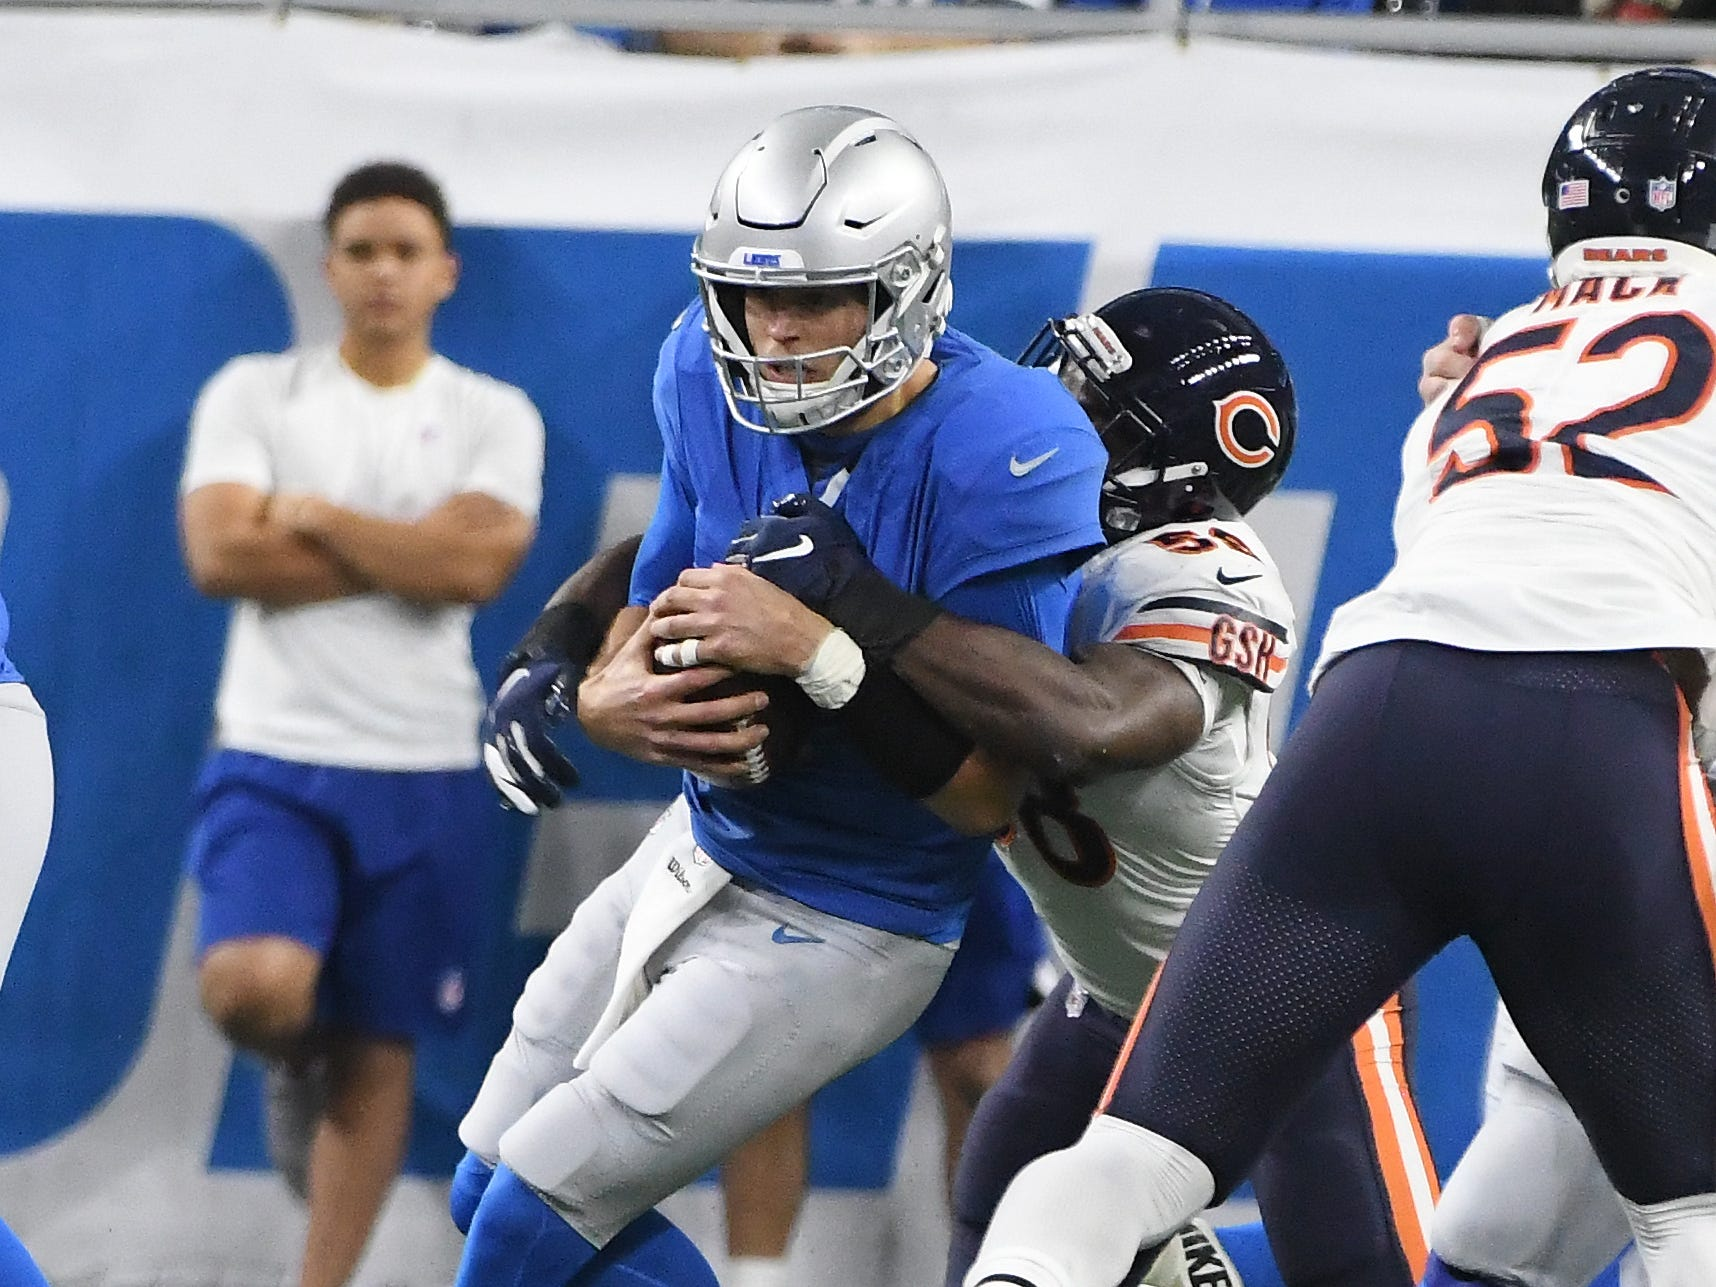 Lions quarterback Matthew Stafford gets sacked by Bears' Roquan Smith in the second quarter.